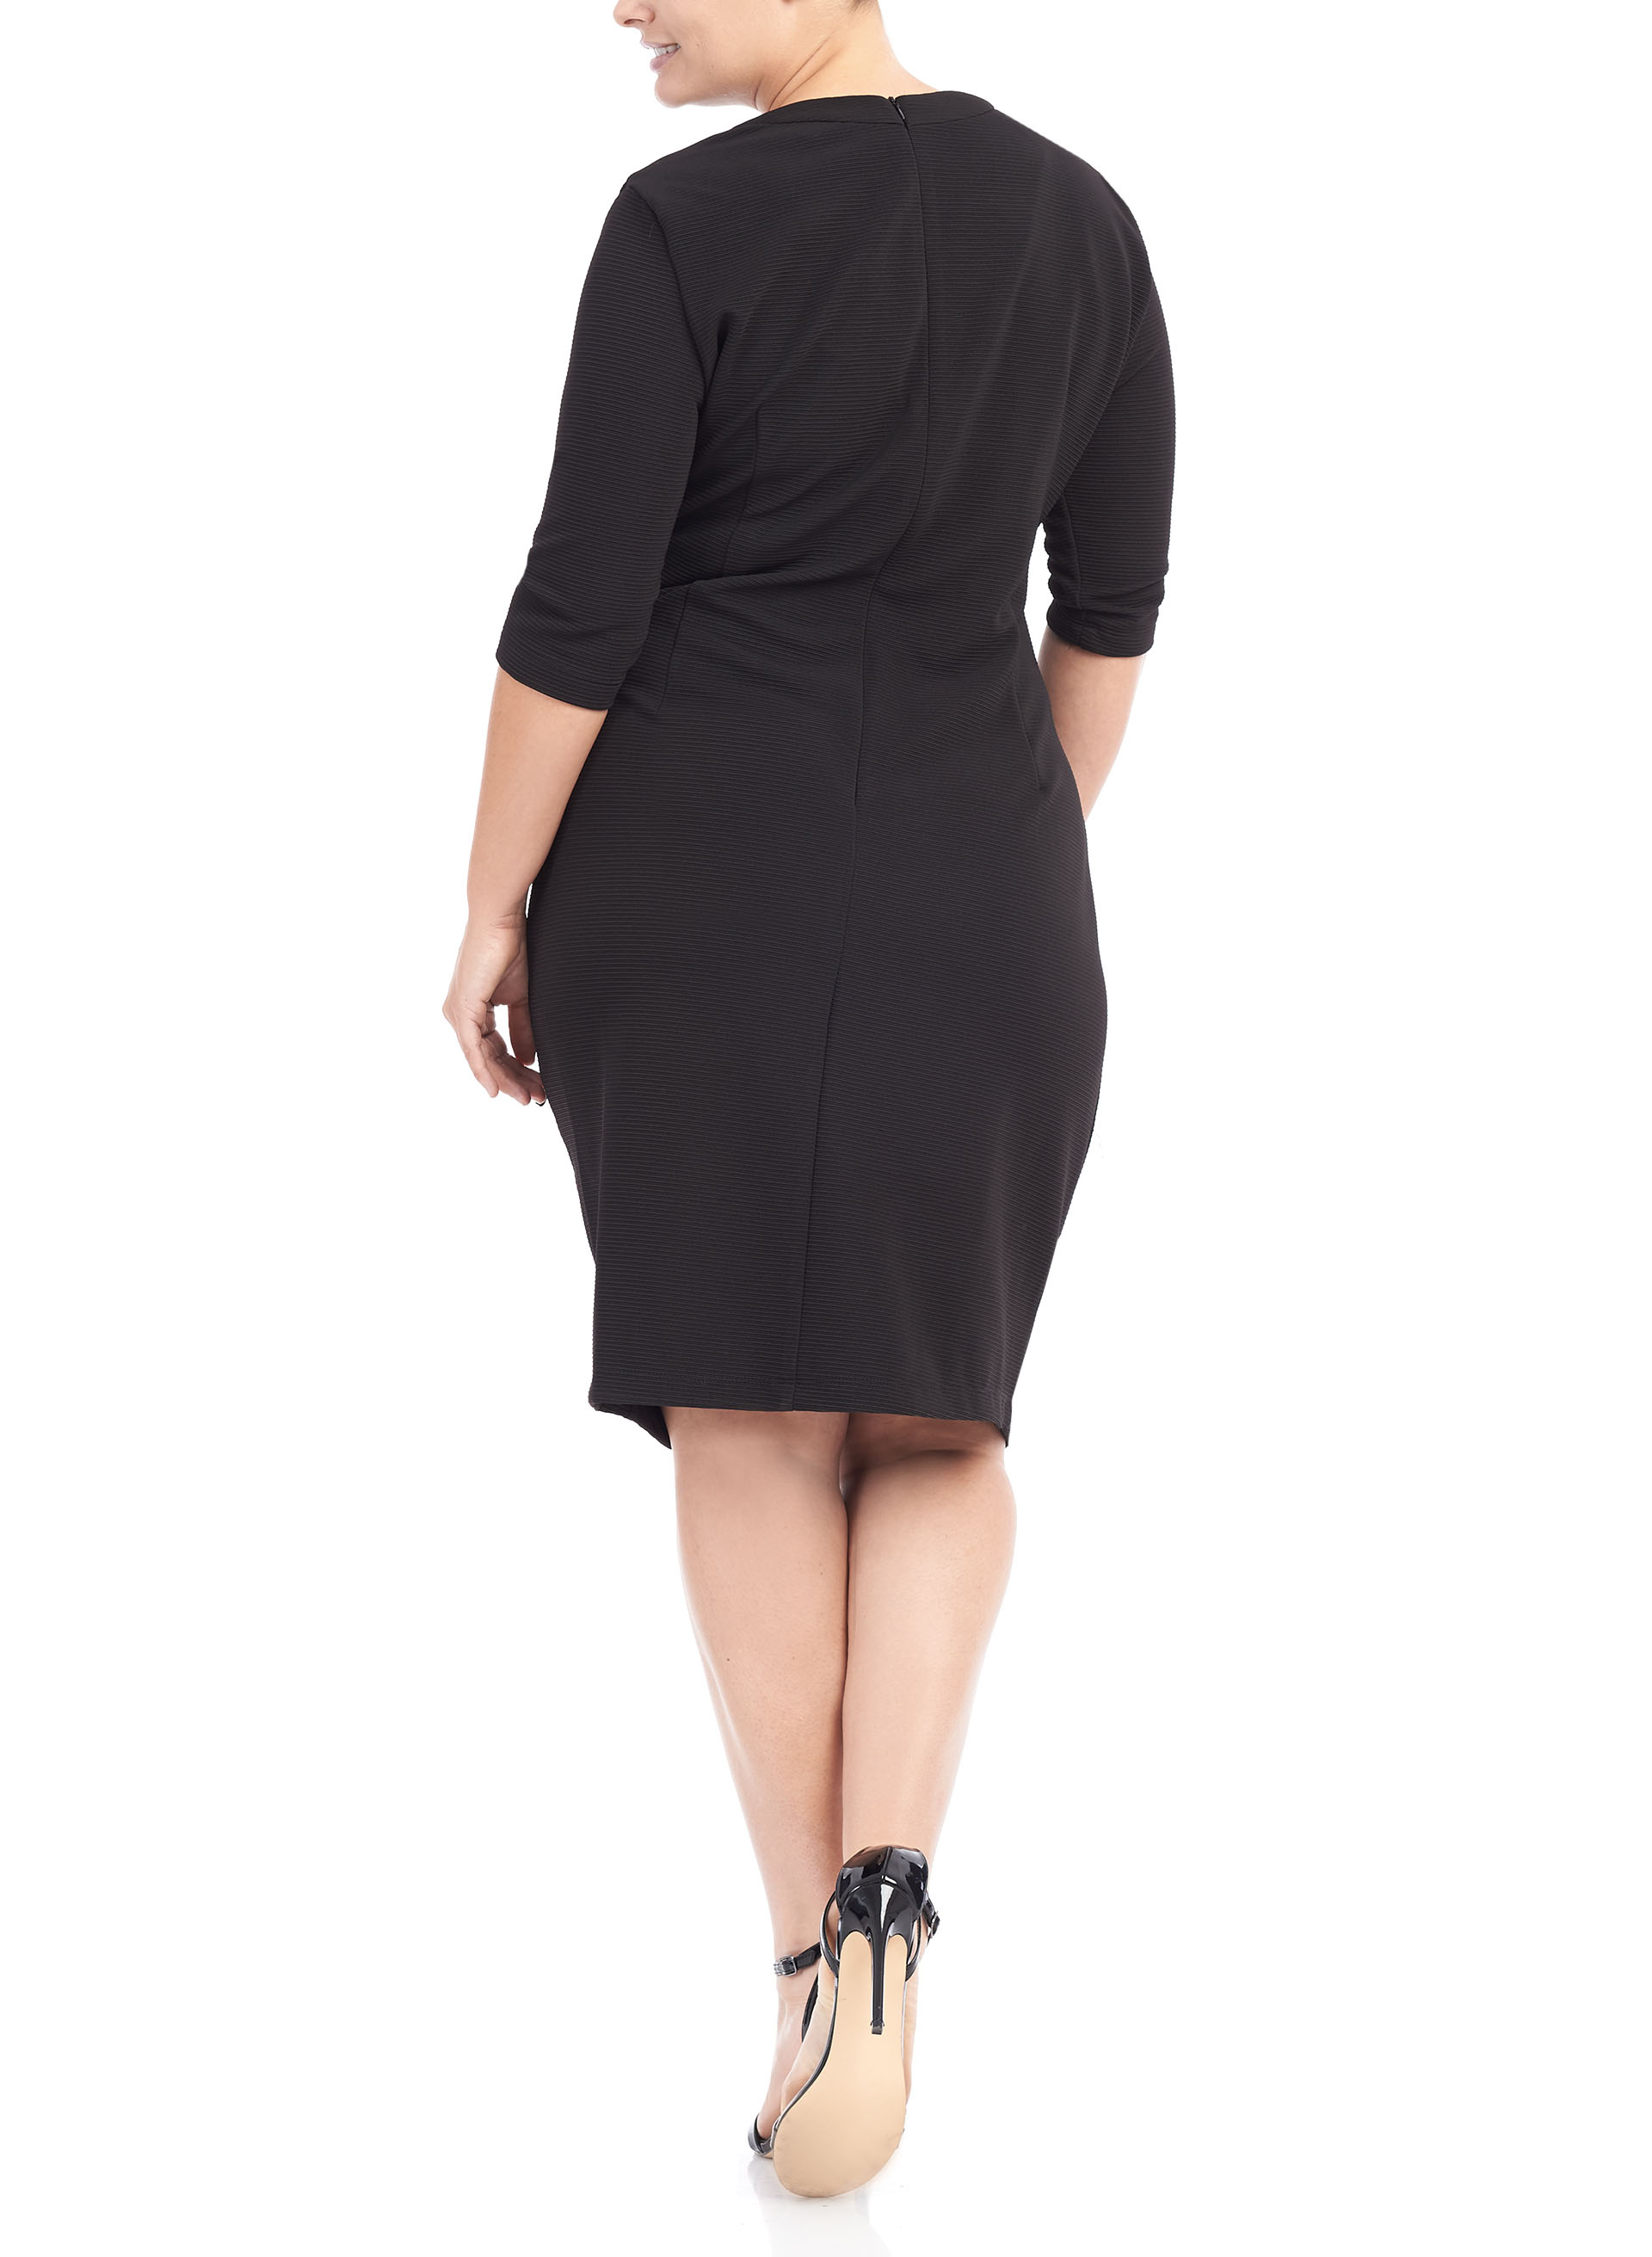 3/4 Sleeve Grommet Side Tie Dress, Black, hi-res